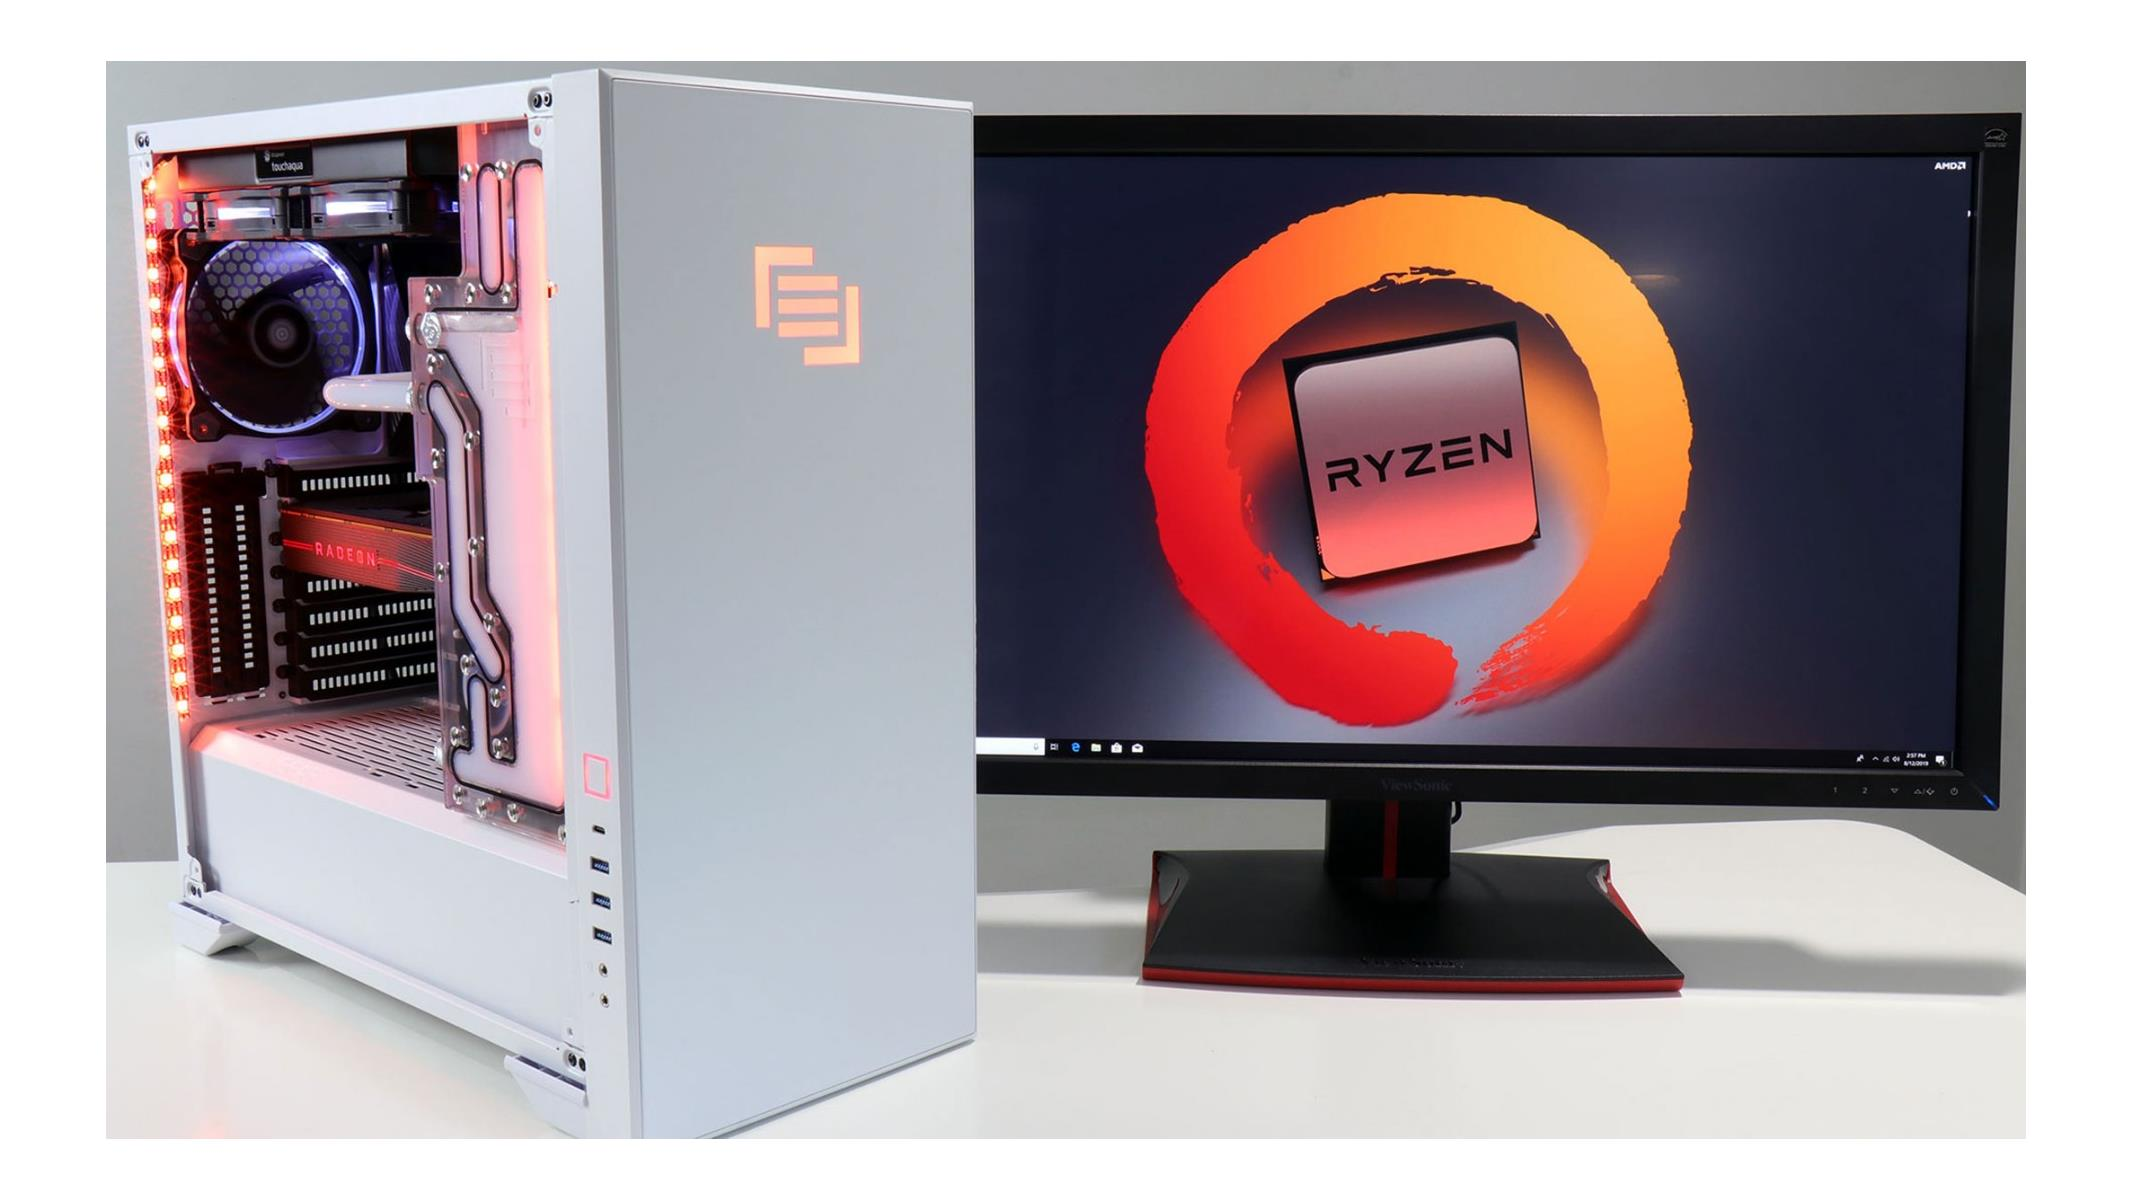 Maingear Vybe Building A Liquid Cooled Amd Ryzen 9 3900x Performance Desktop On Location Hothardware